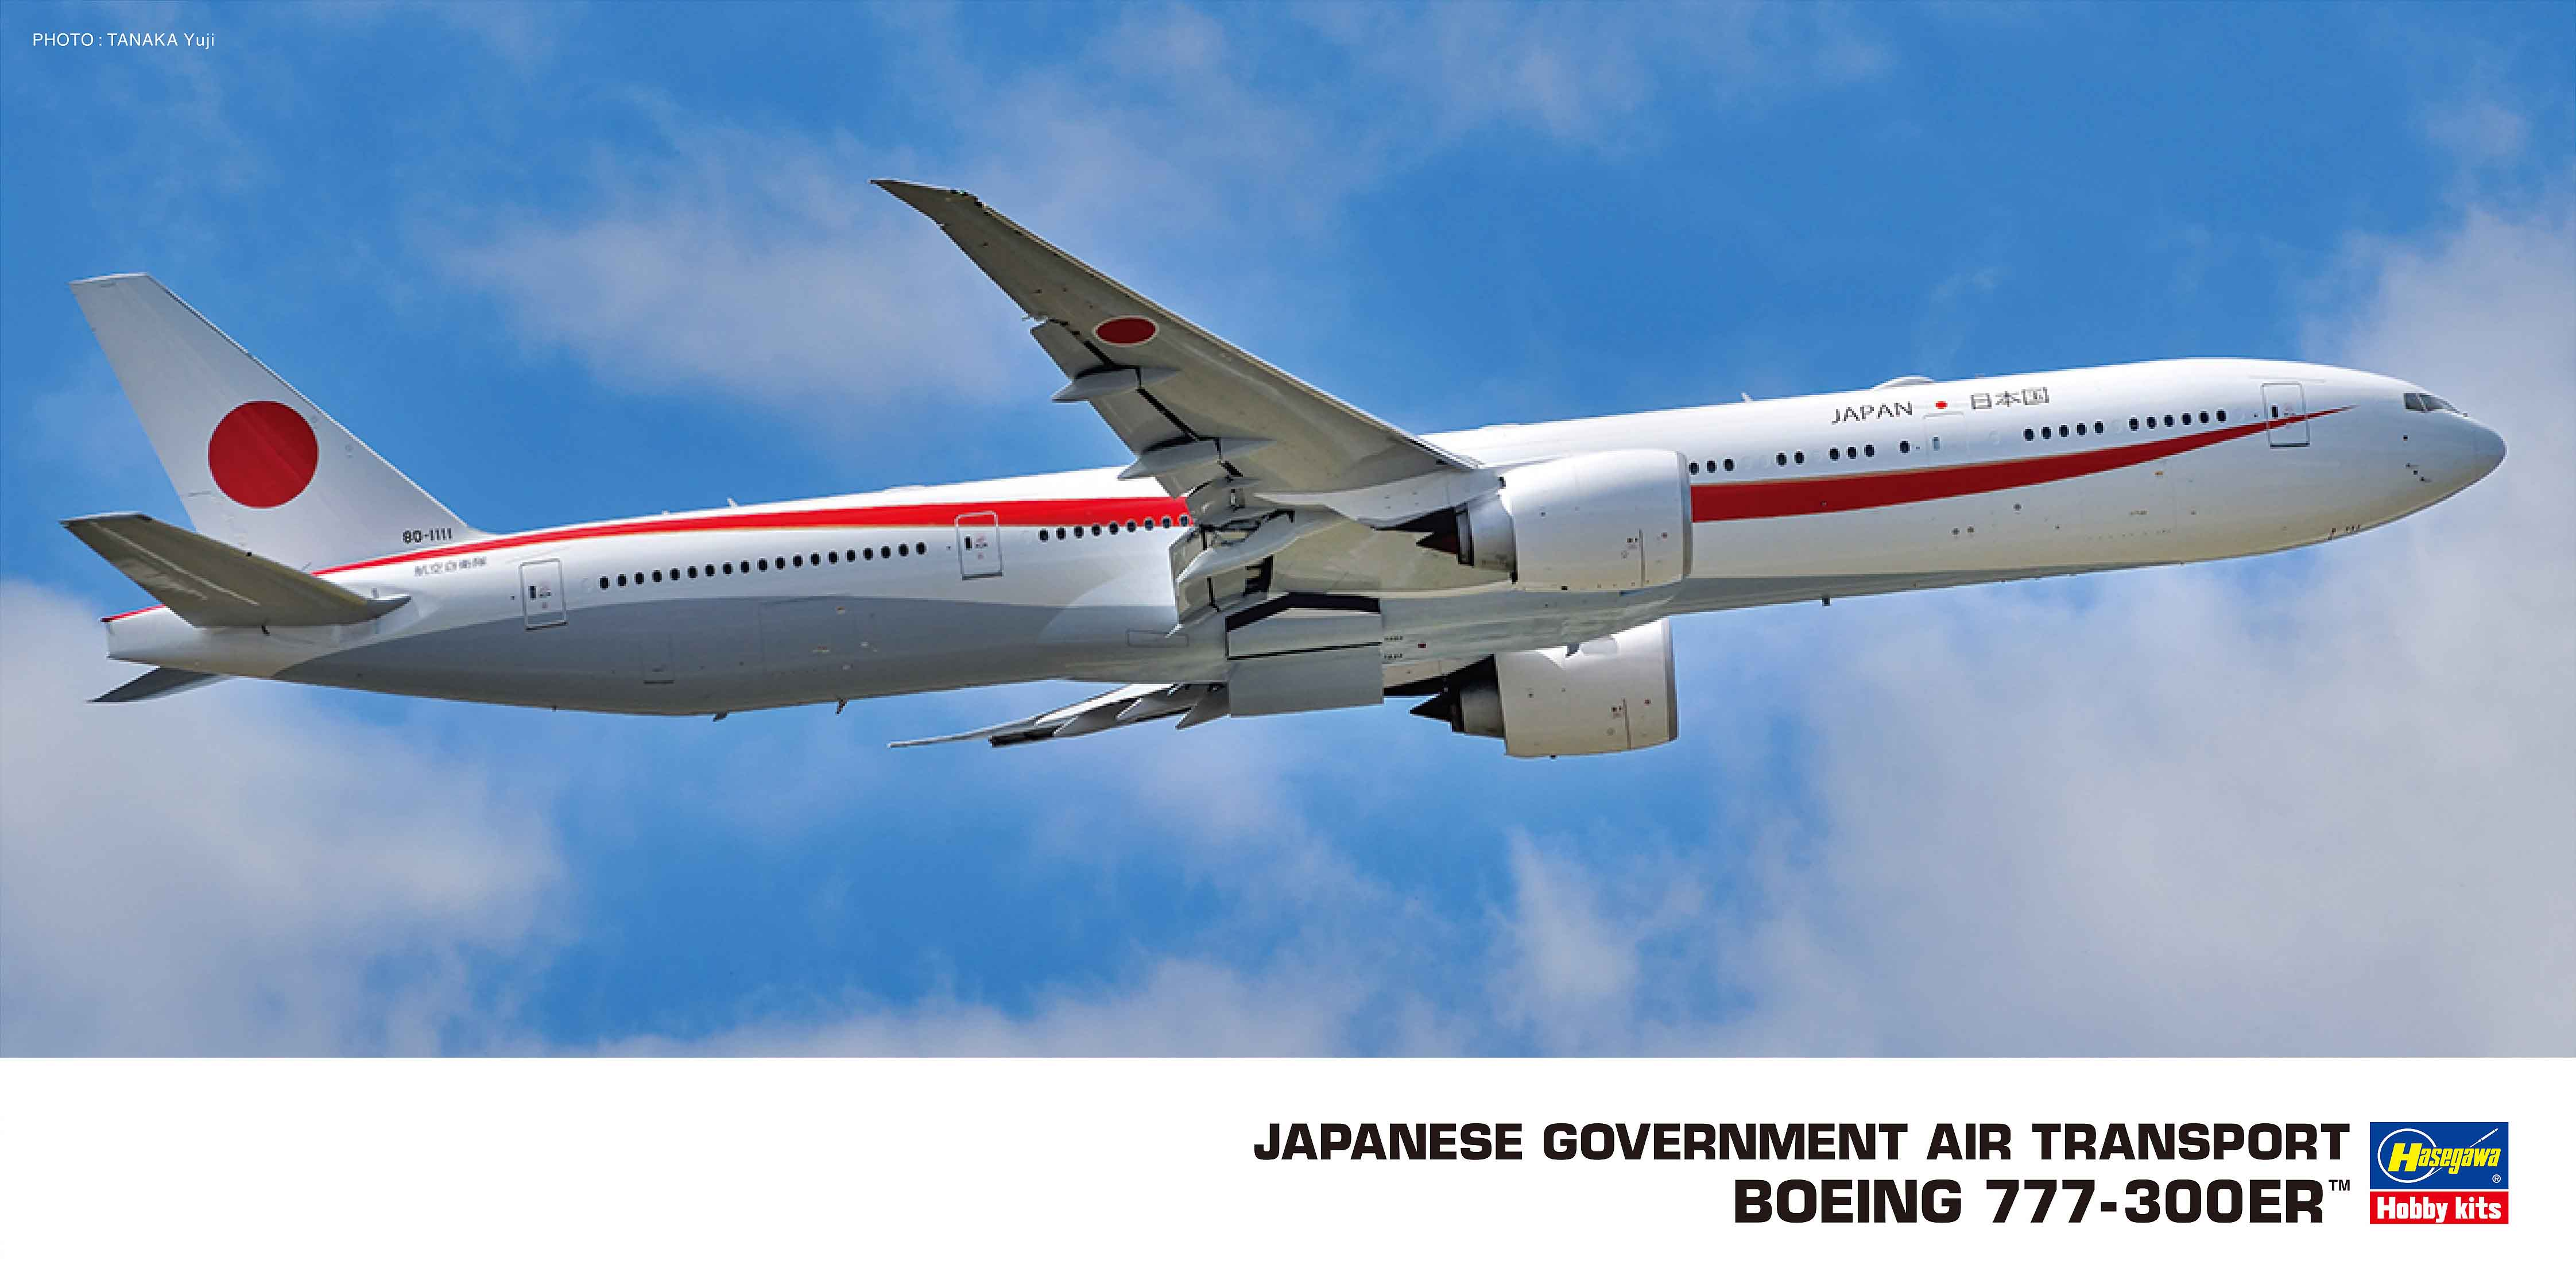 Hasegawa 1/200 Japanese Government Air Transport Boeing 777-300ER